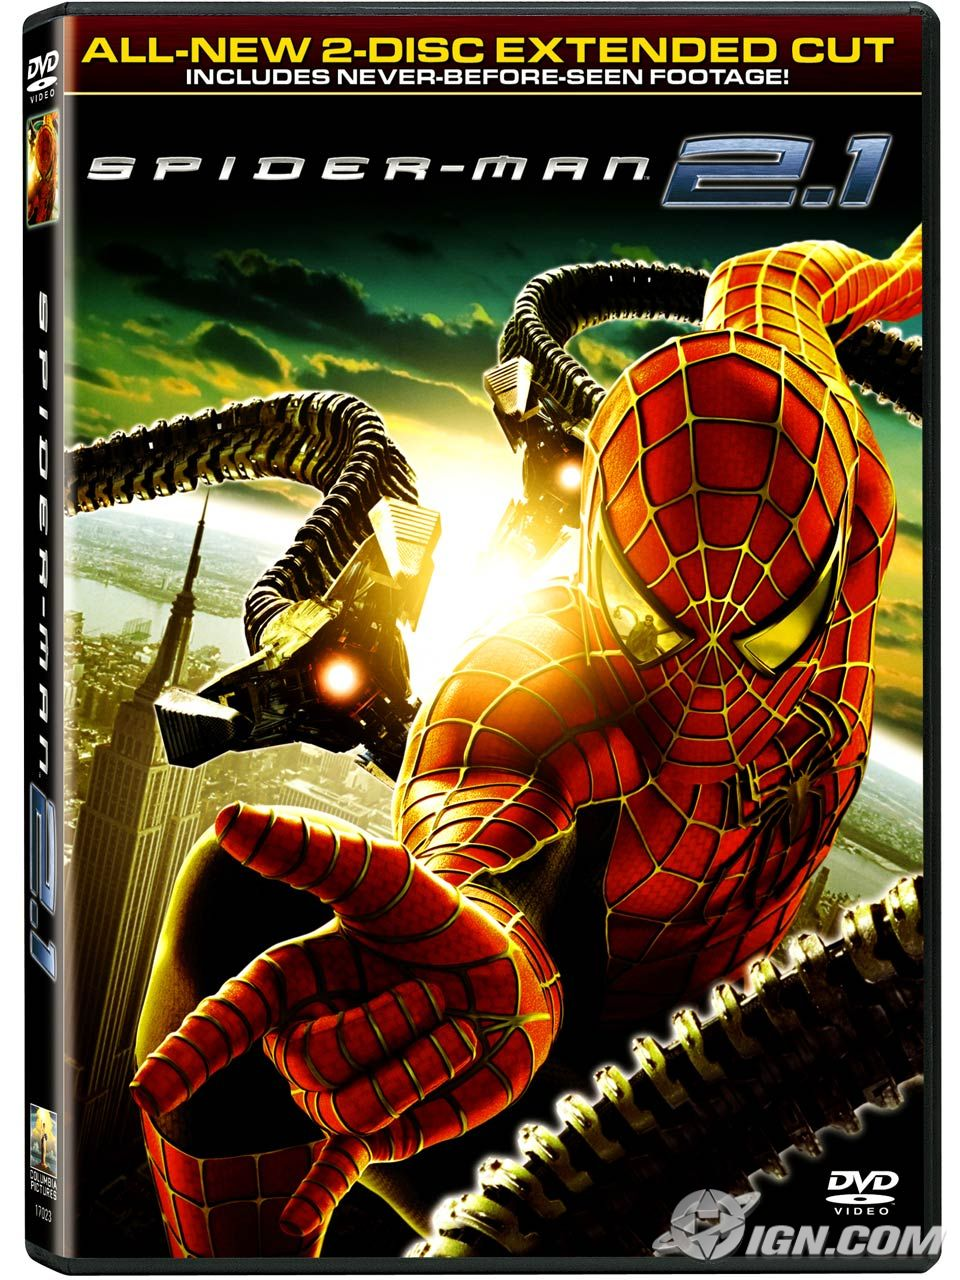 Spider Man 21 Extended Cut 20070206002805340 1899500